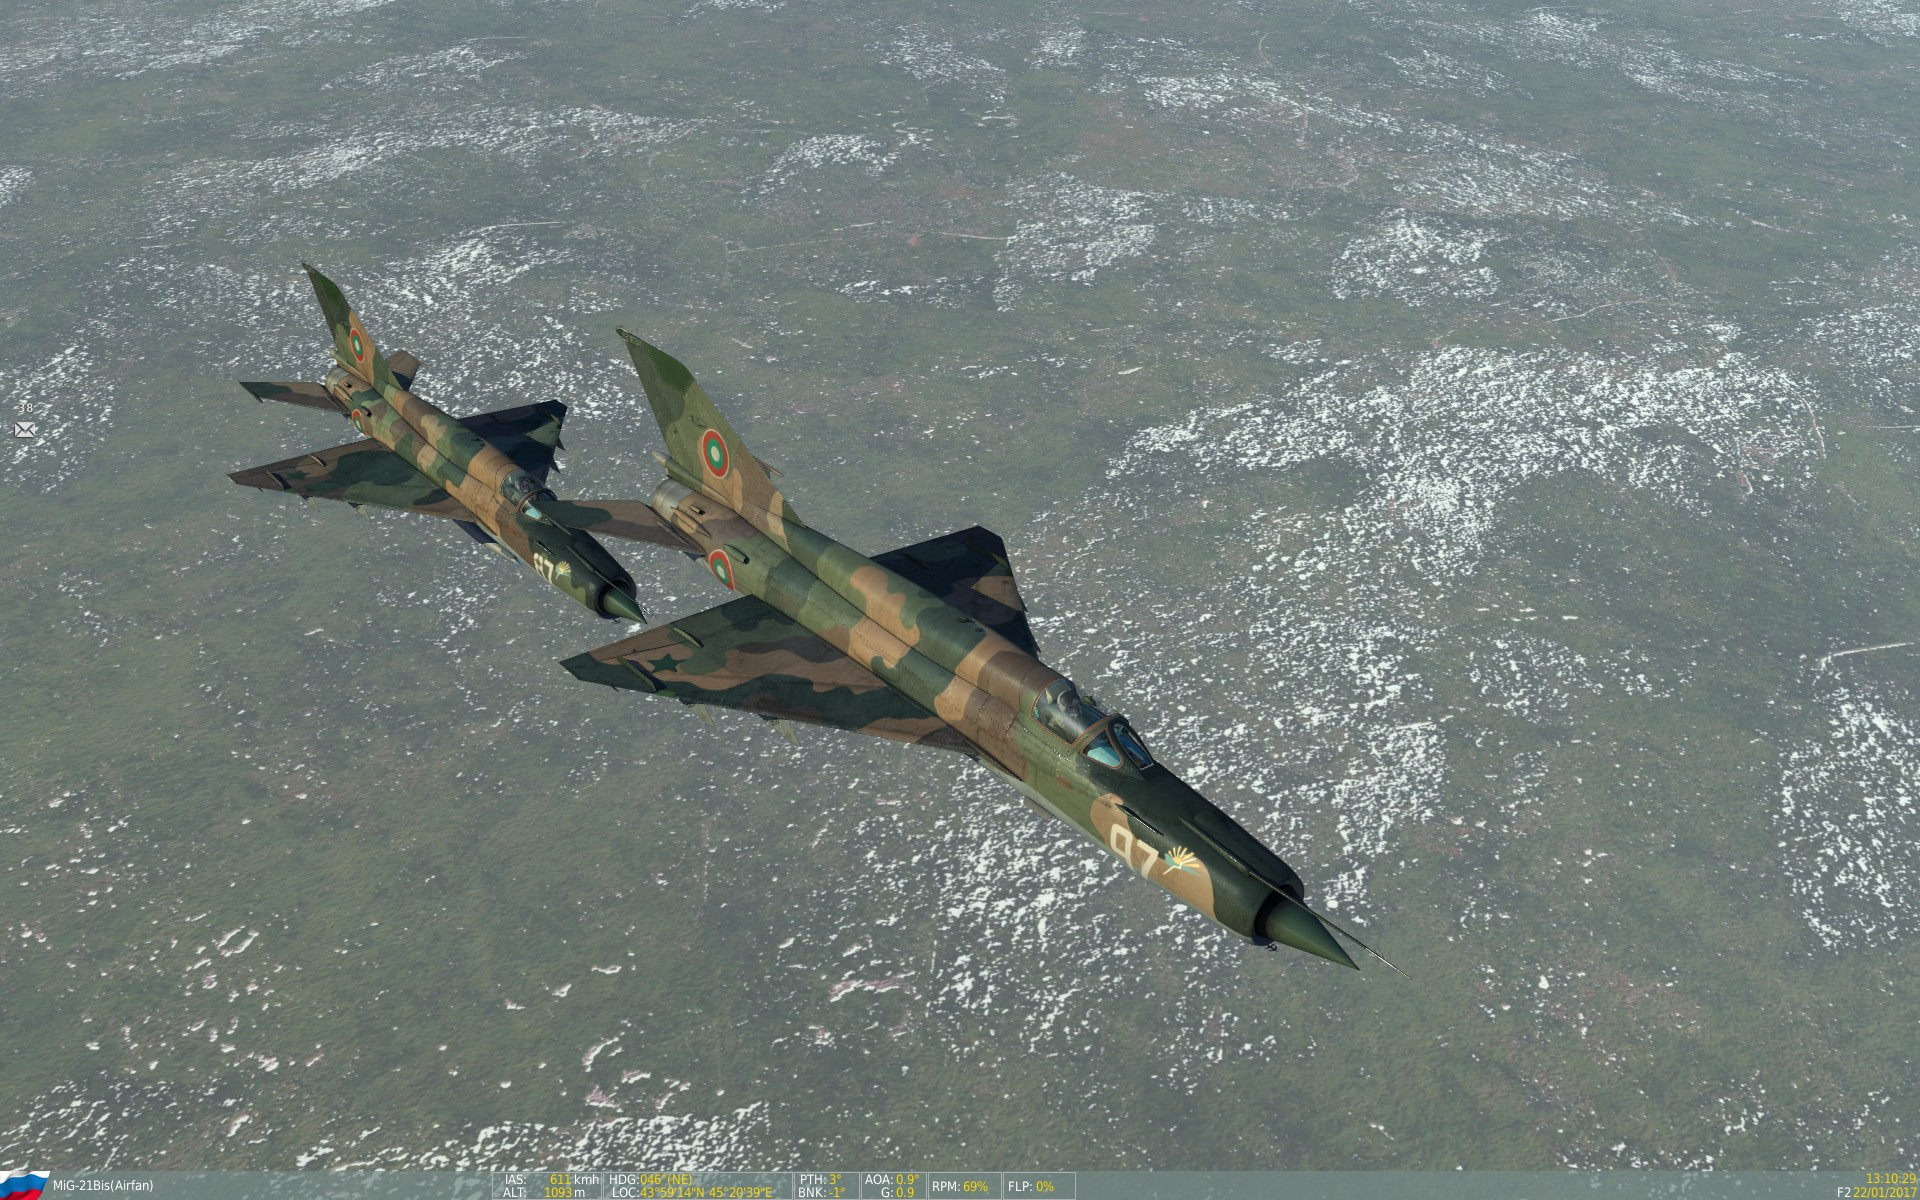 Training flights with MiG-21